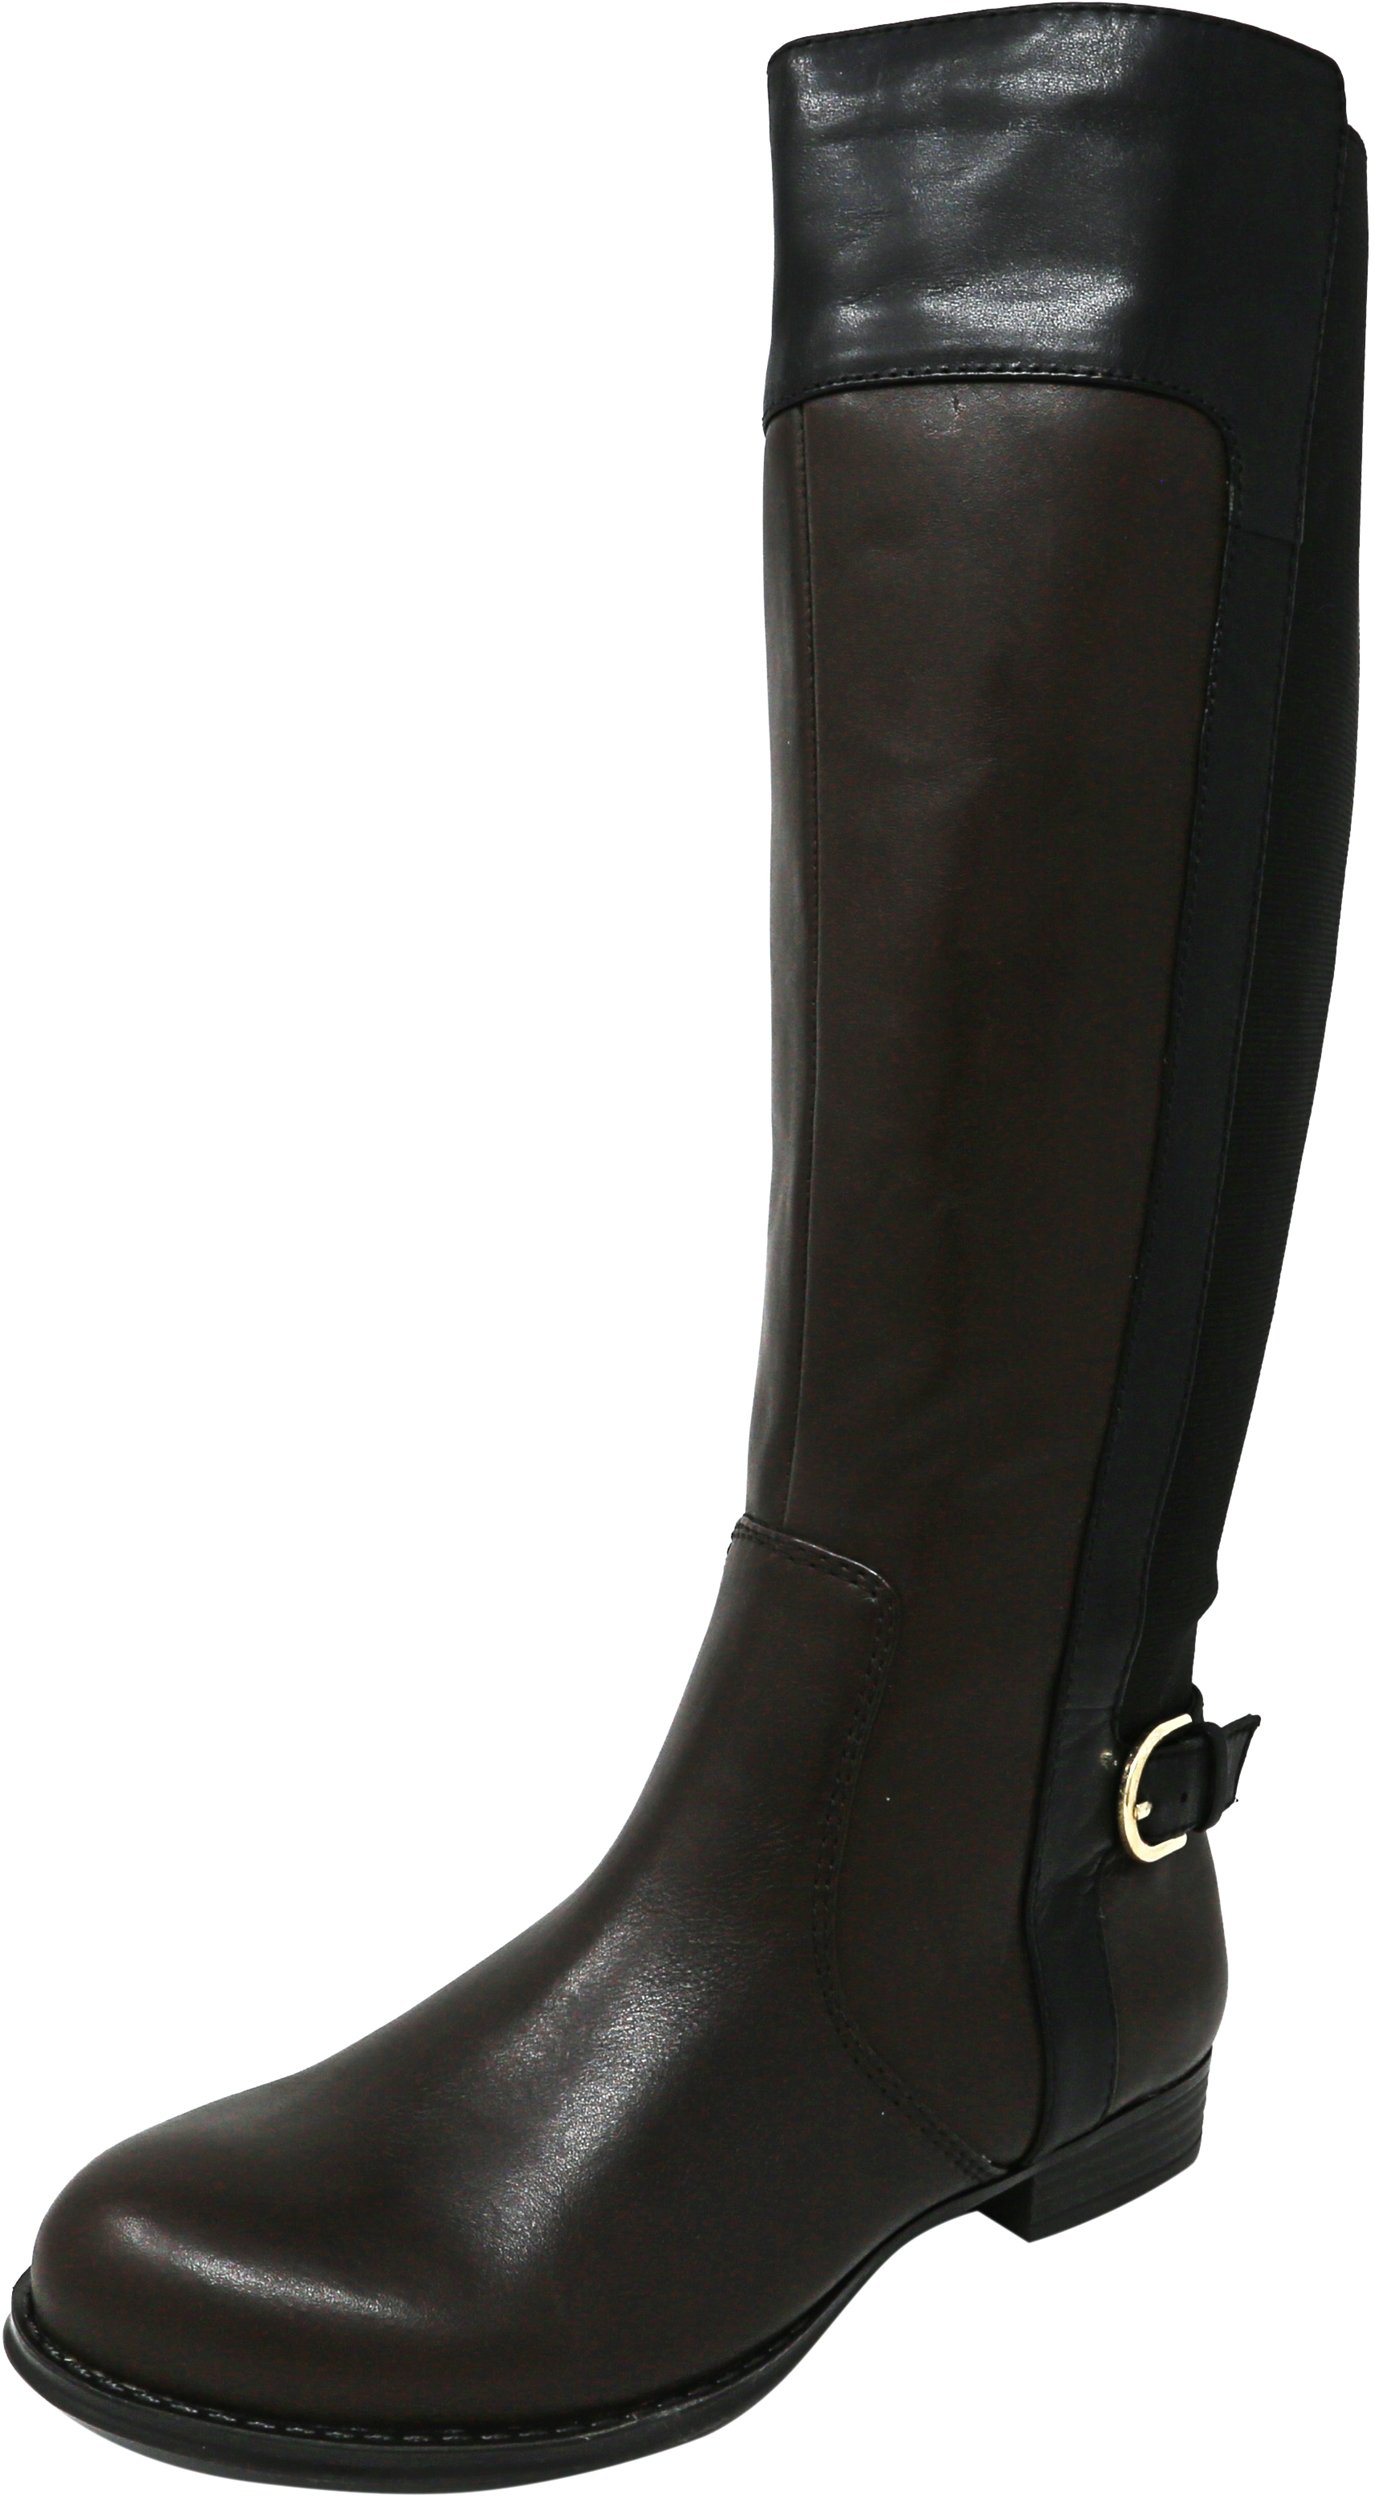 Isaac Mizrahi Live Women's Toby Leather Brown Multi Knee-High Equestrian Boot - 6W